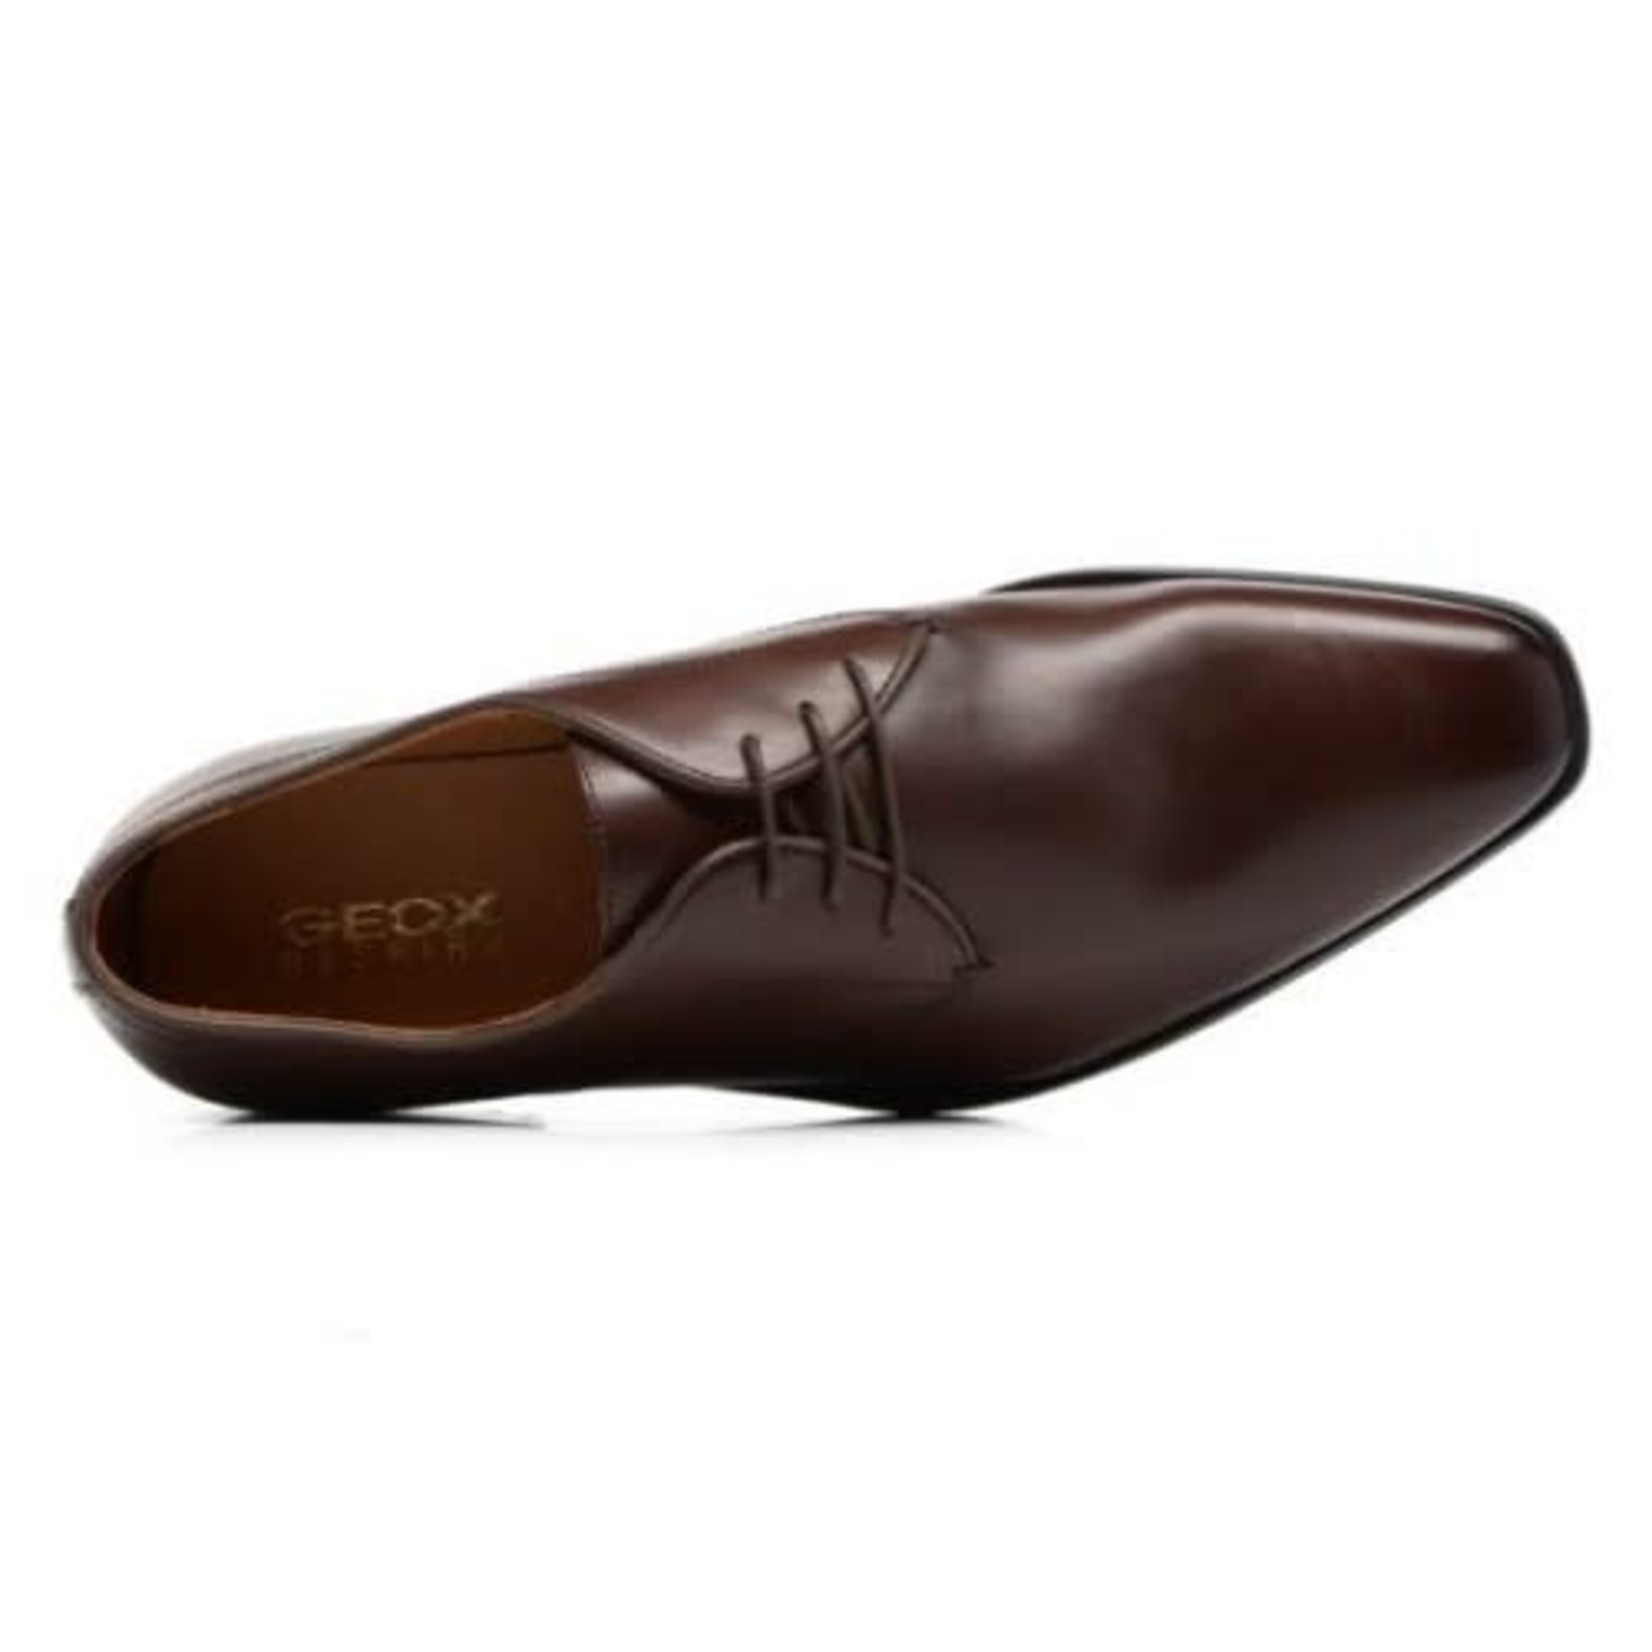 GEOX Geox - Souliers homme - New Life - U54P4D